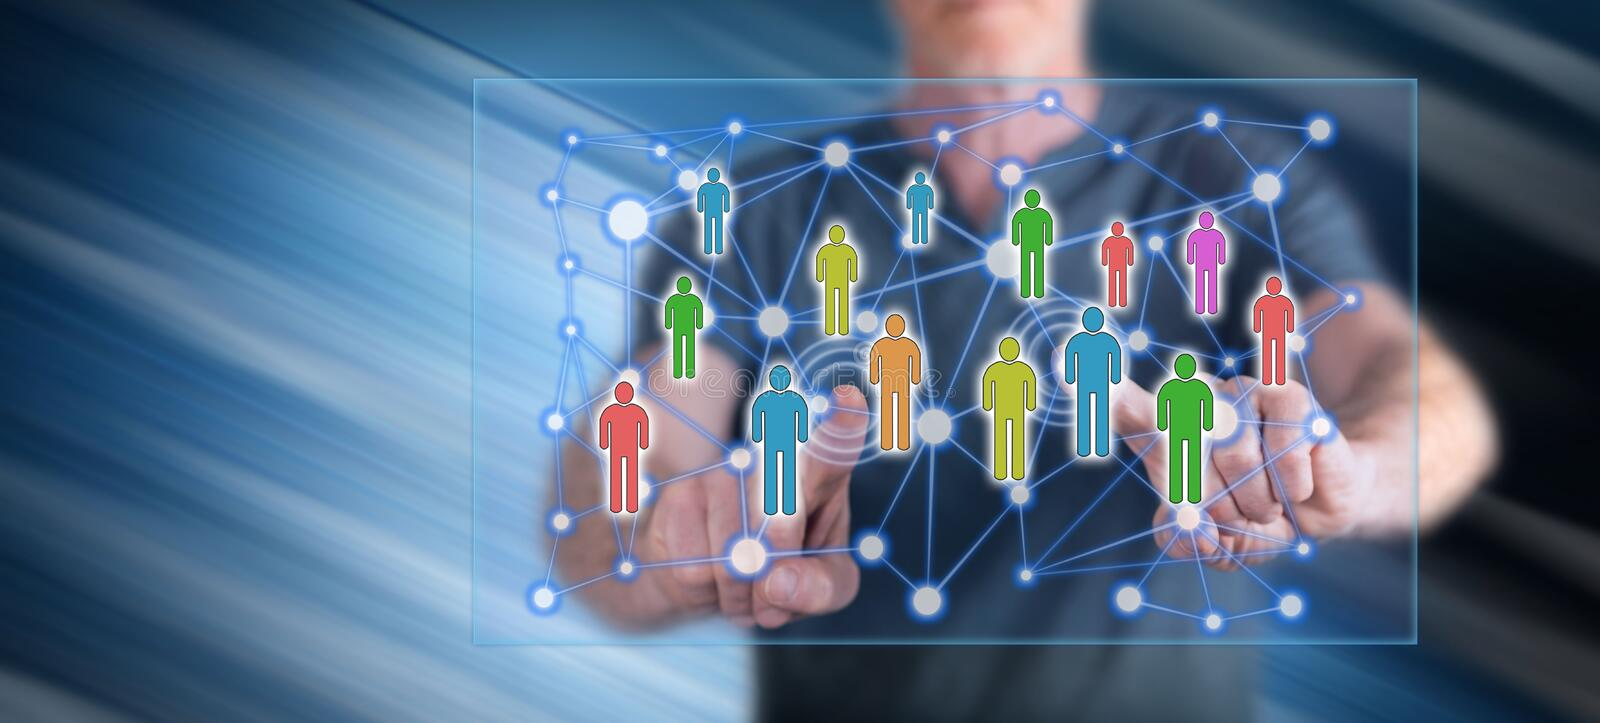 Man touching a social network concept royalty free stock photos